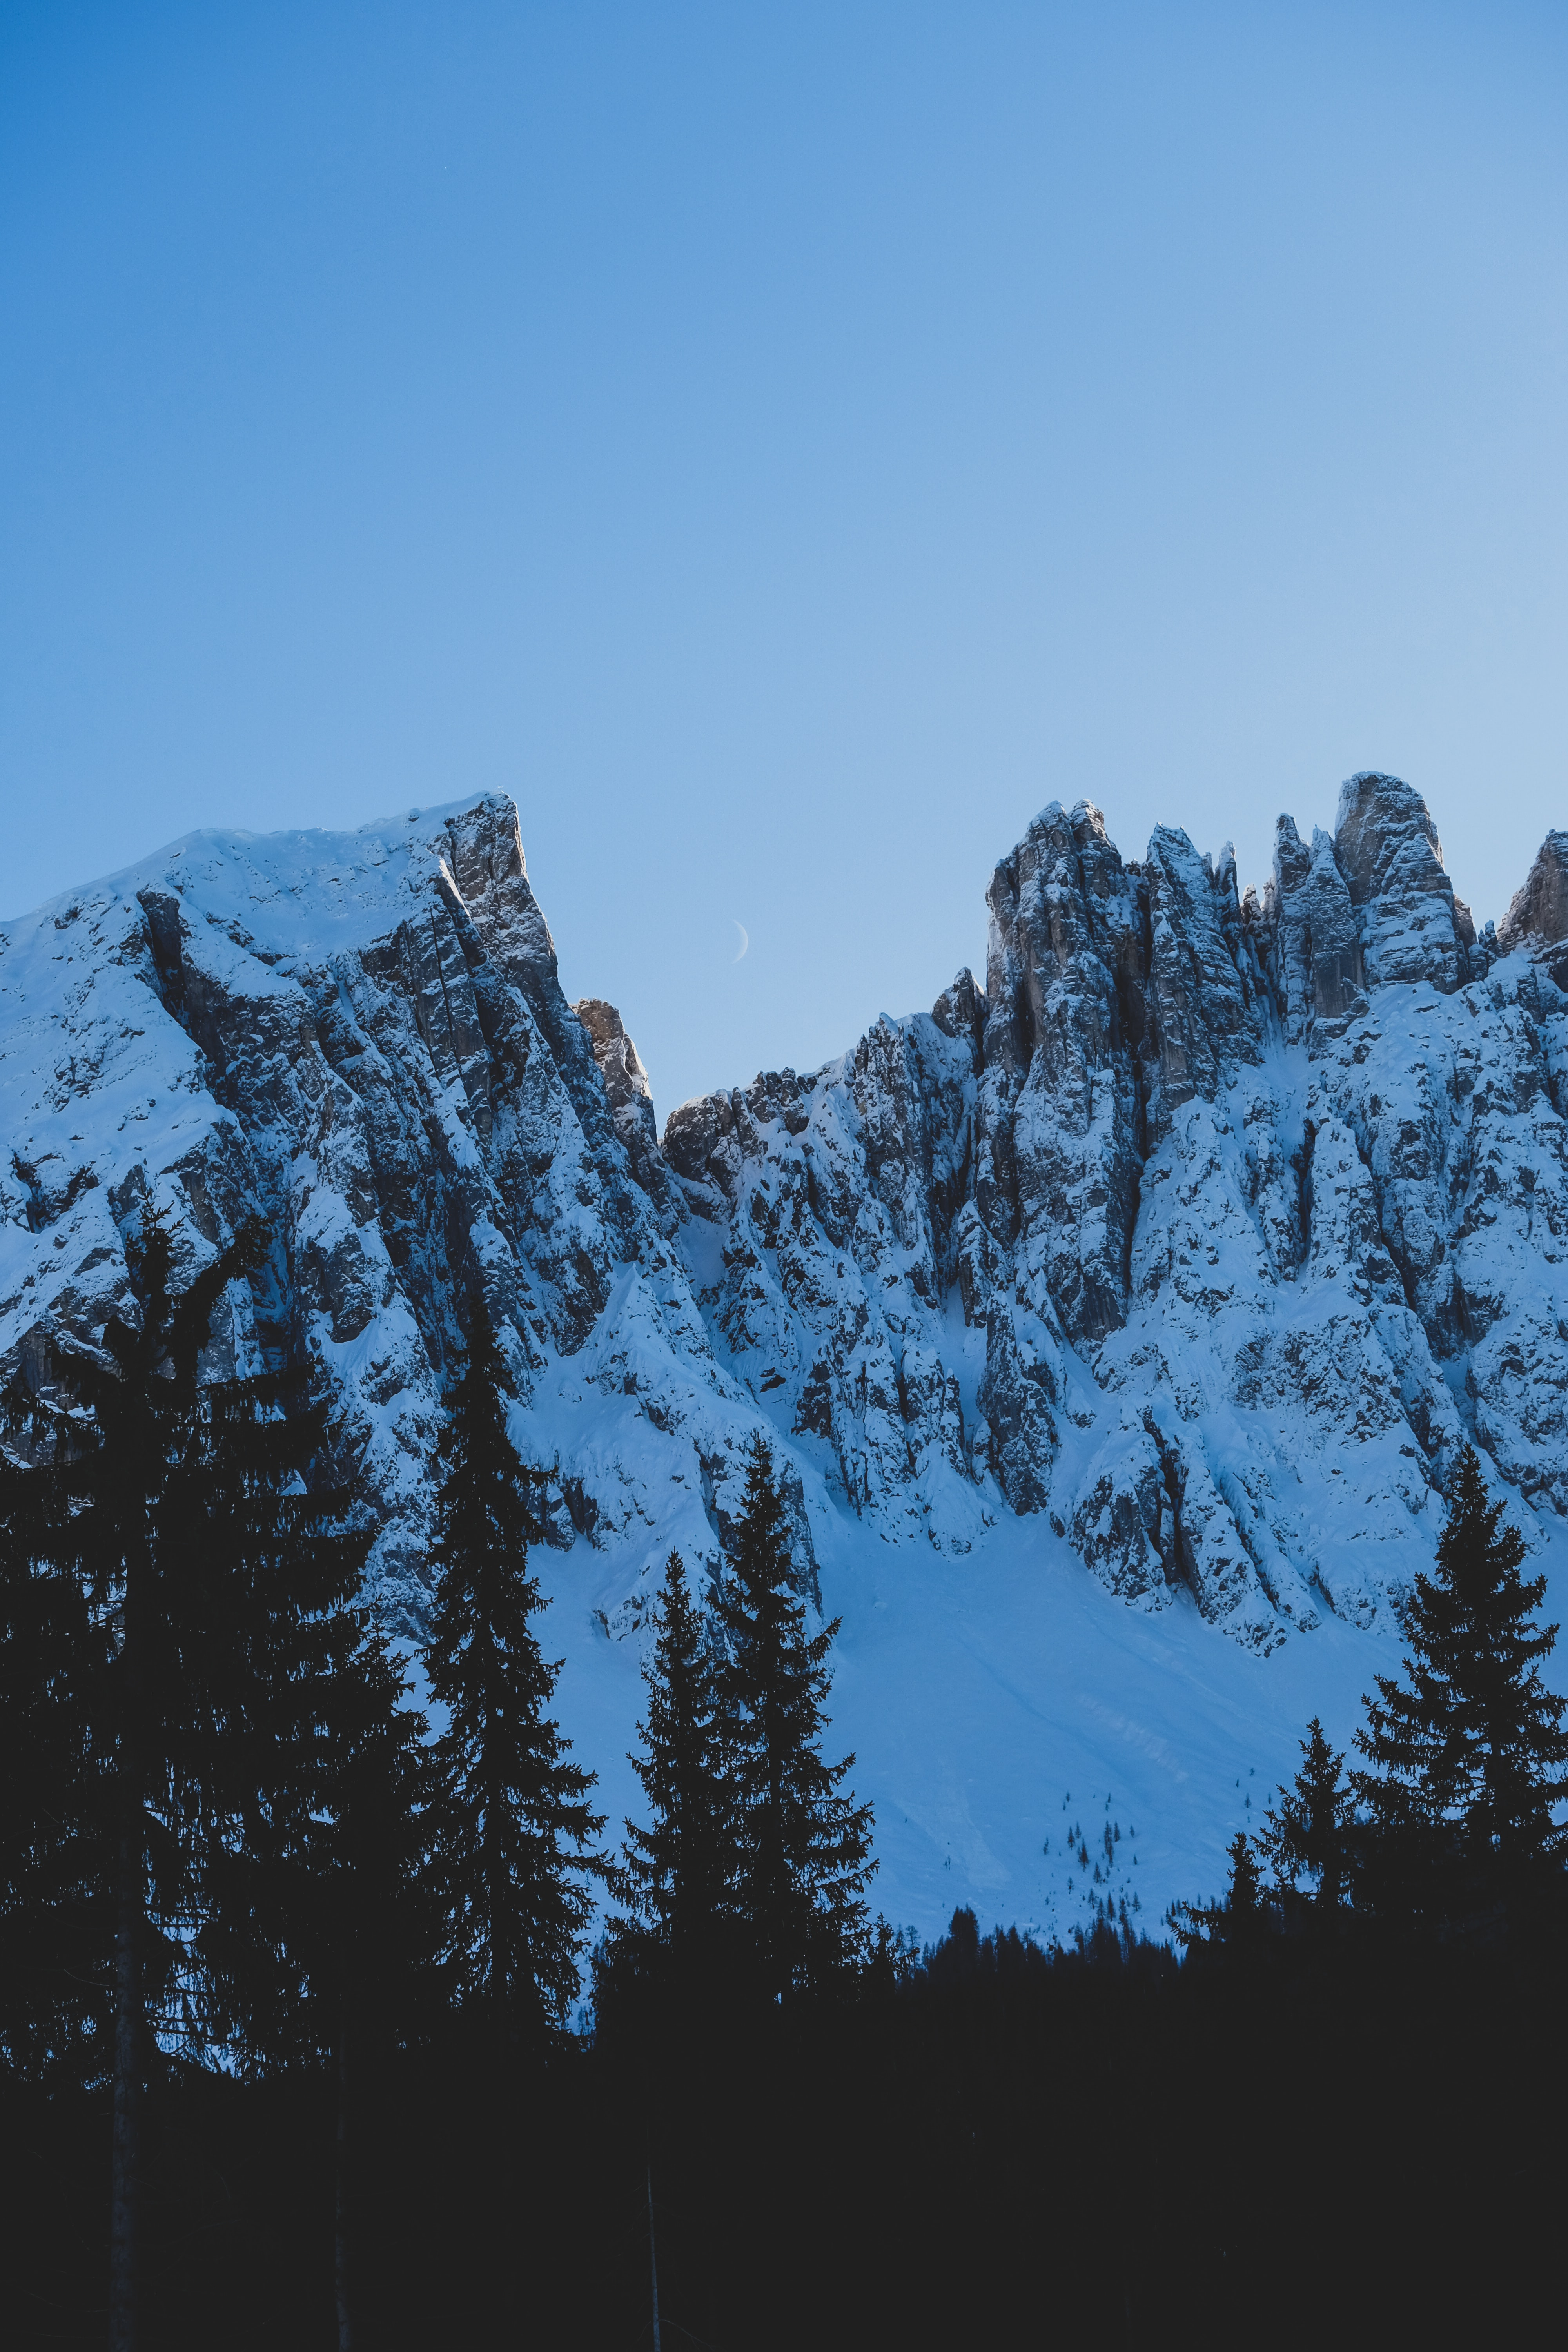 123494 download wallpaper Nature, Rocks, Snow, Snow Covered, Snowbound, Spruce, Fir, Moon, Mountains screensavers and pictures for free